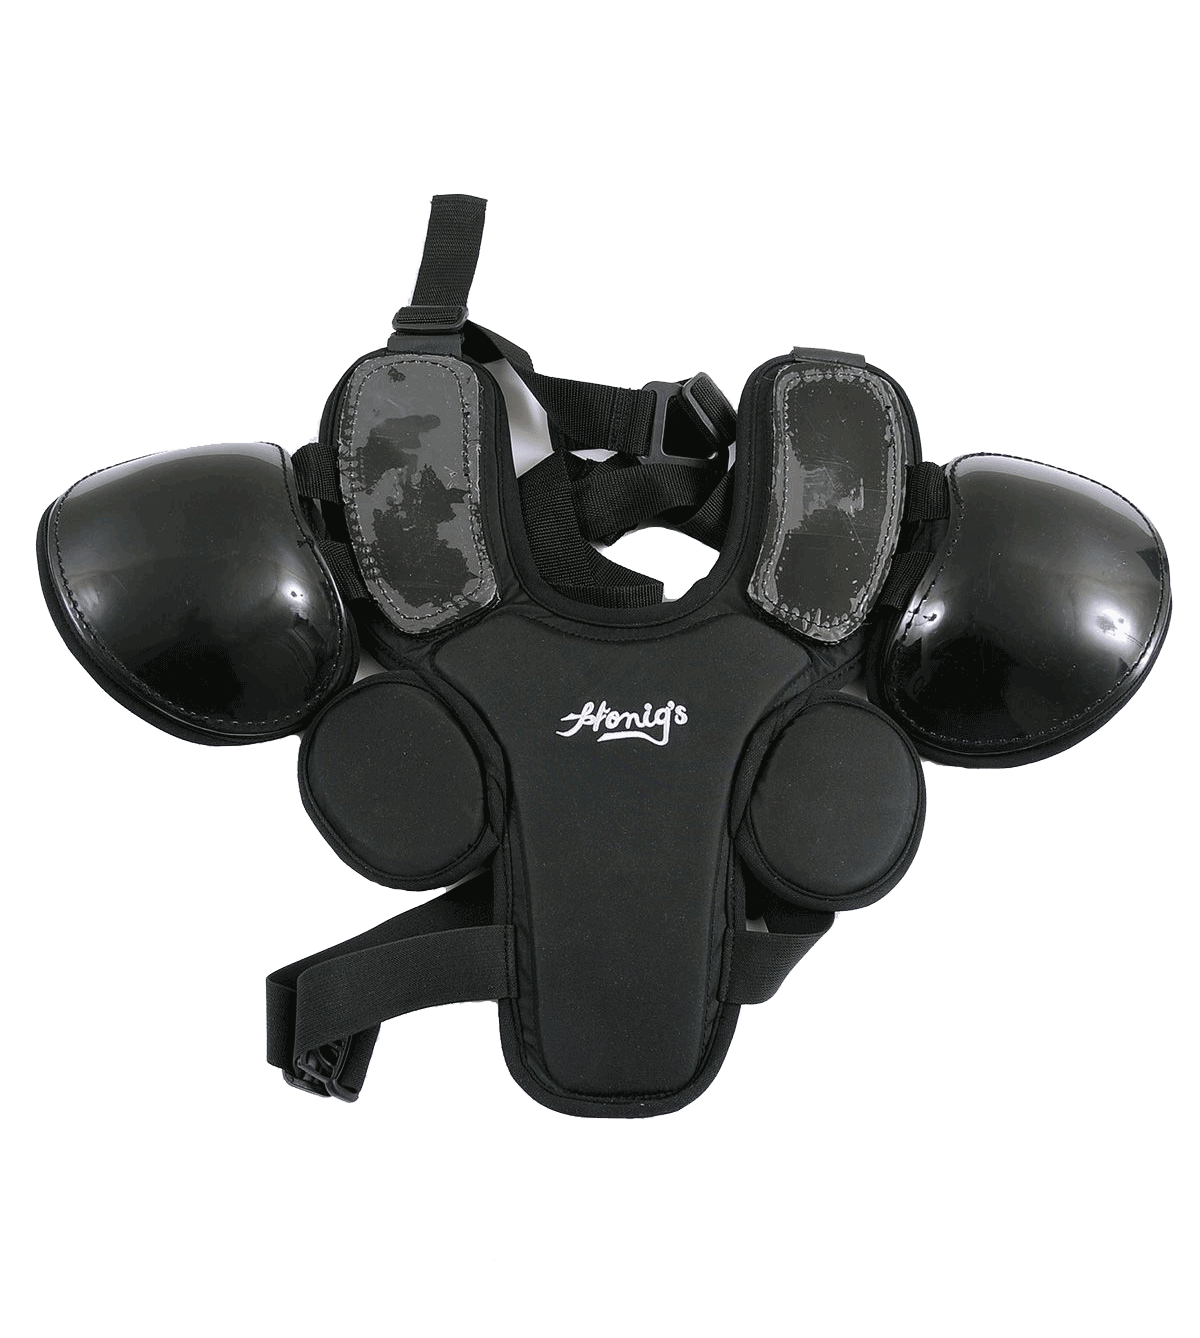 Honig's Elite Fastpitch Chest Protector